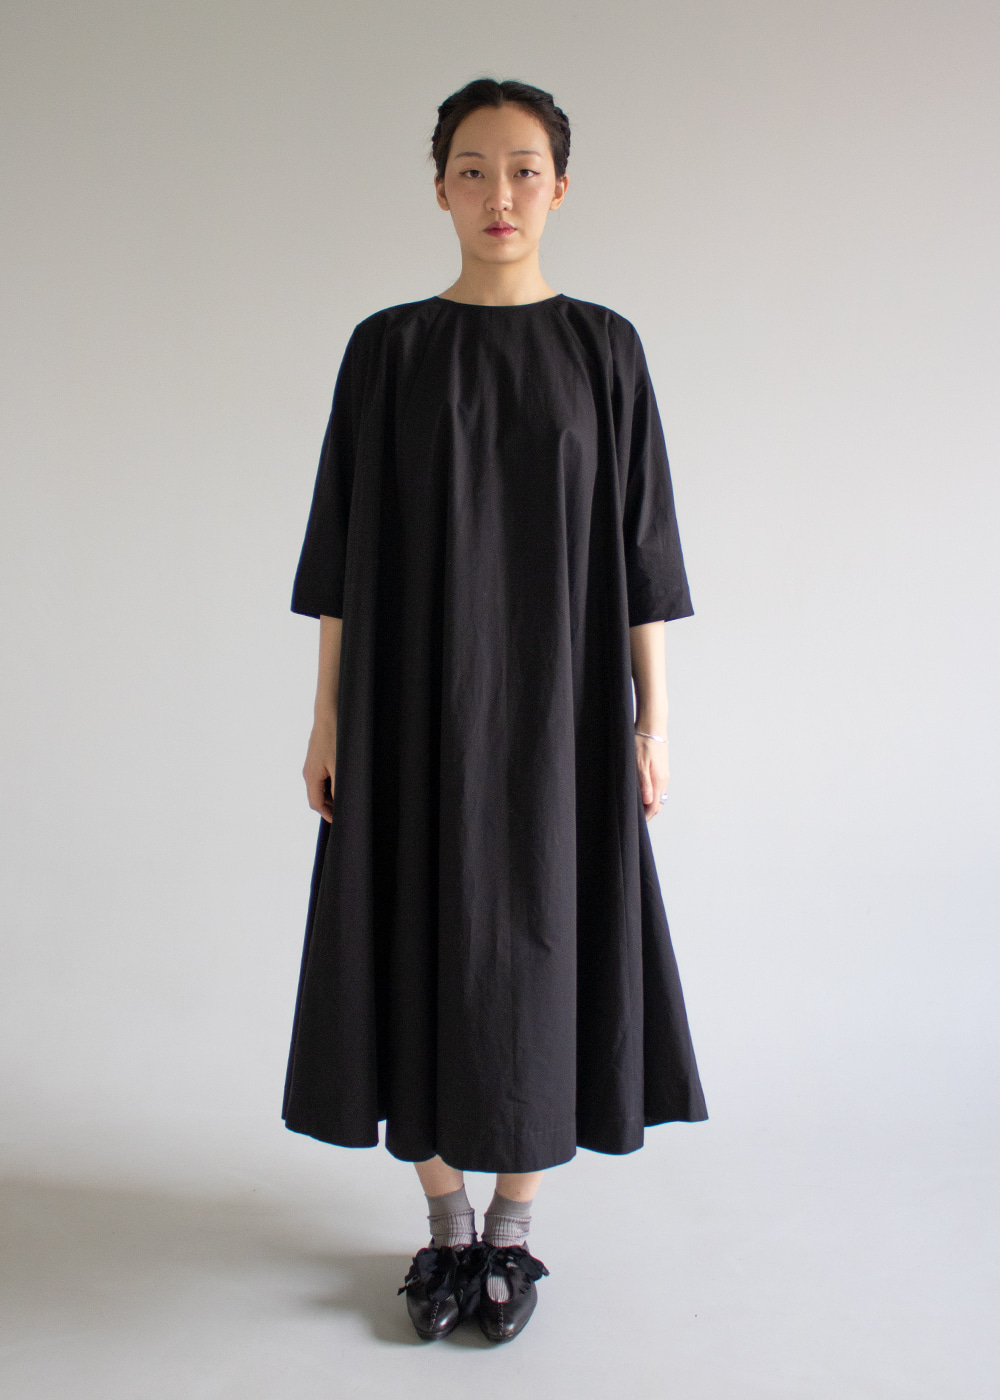 Soleil Dress - Black